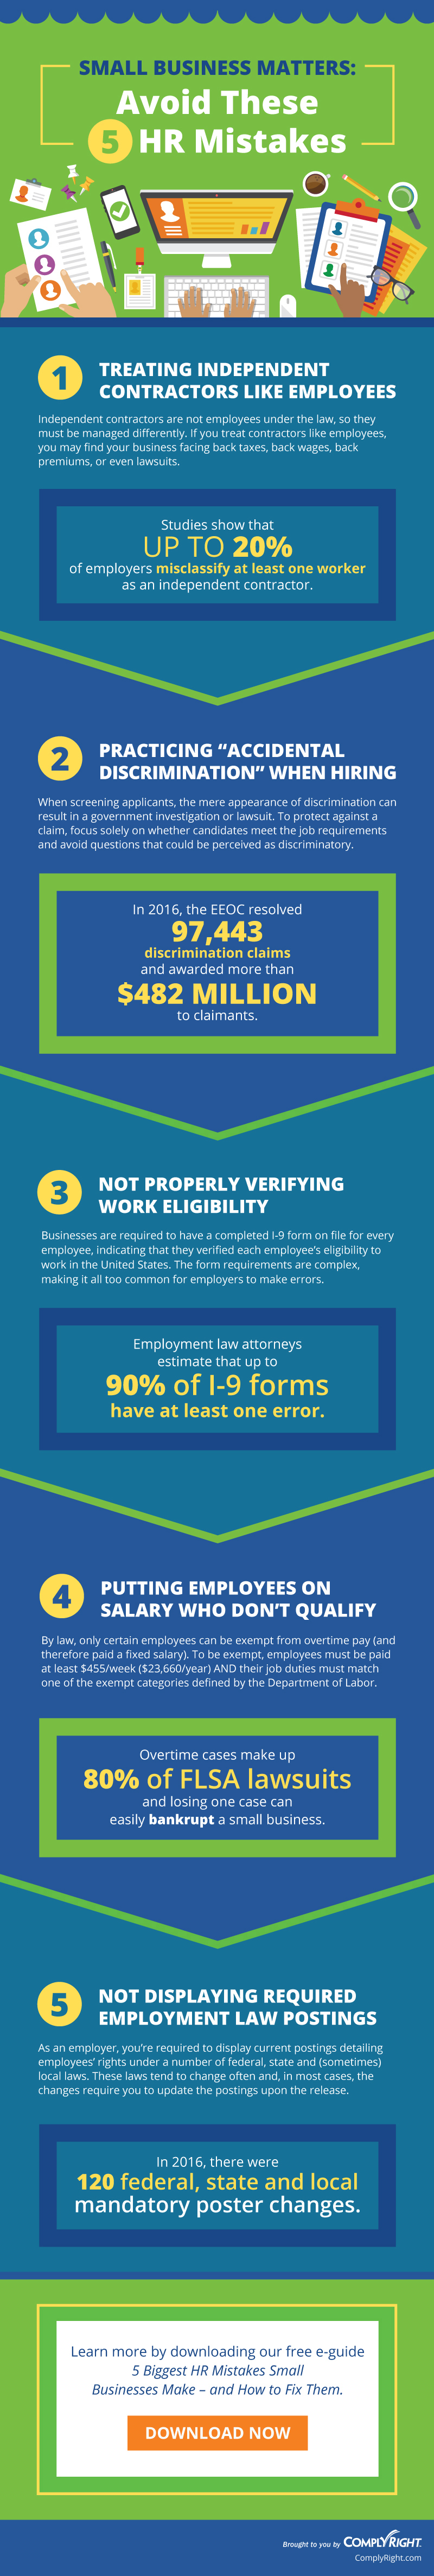 small business hr problems and mistakes infographic